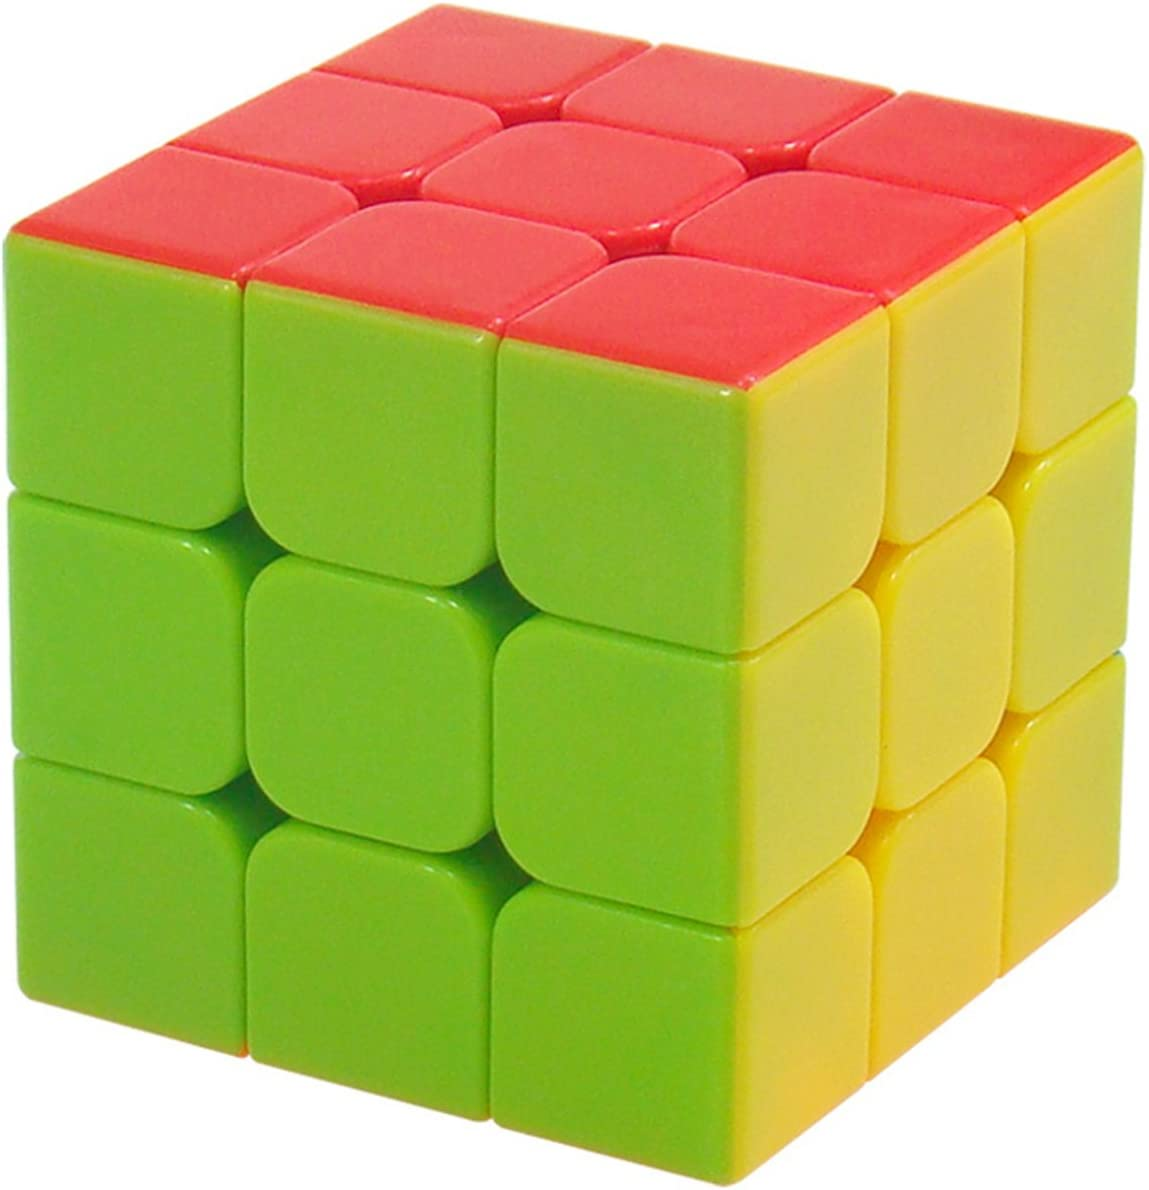 2x2x2 à 11x11x11 Speed ​​Cube Aucun Autocollant Magic Cube Puzzles Jouet (11x11x11) 3x3x3